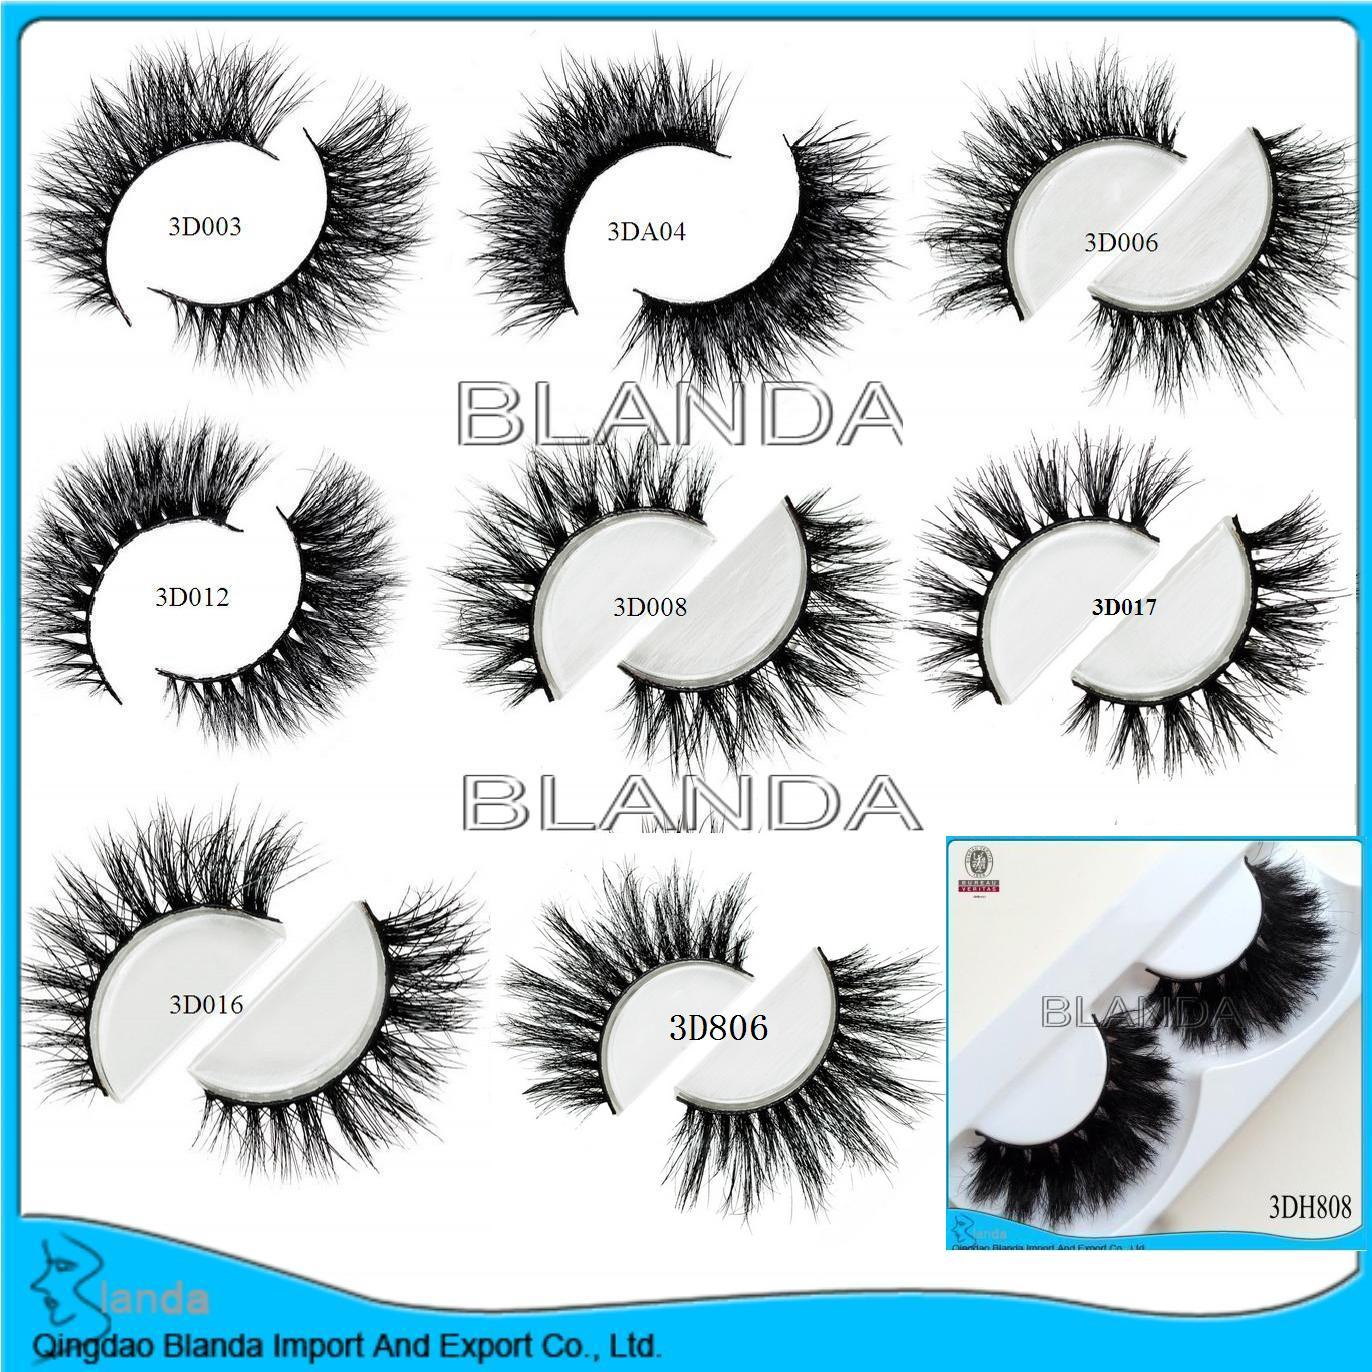 Premium Quality False Eyelashes Natural Look Lashes Reusable Handmade Cruelty-Free Eyelashes